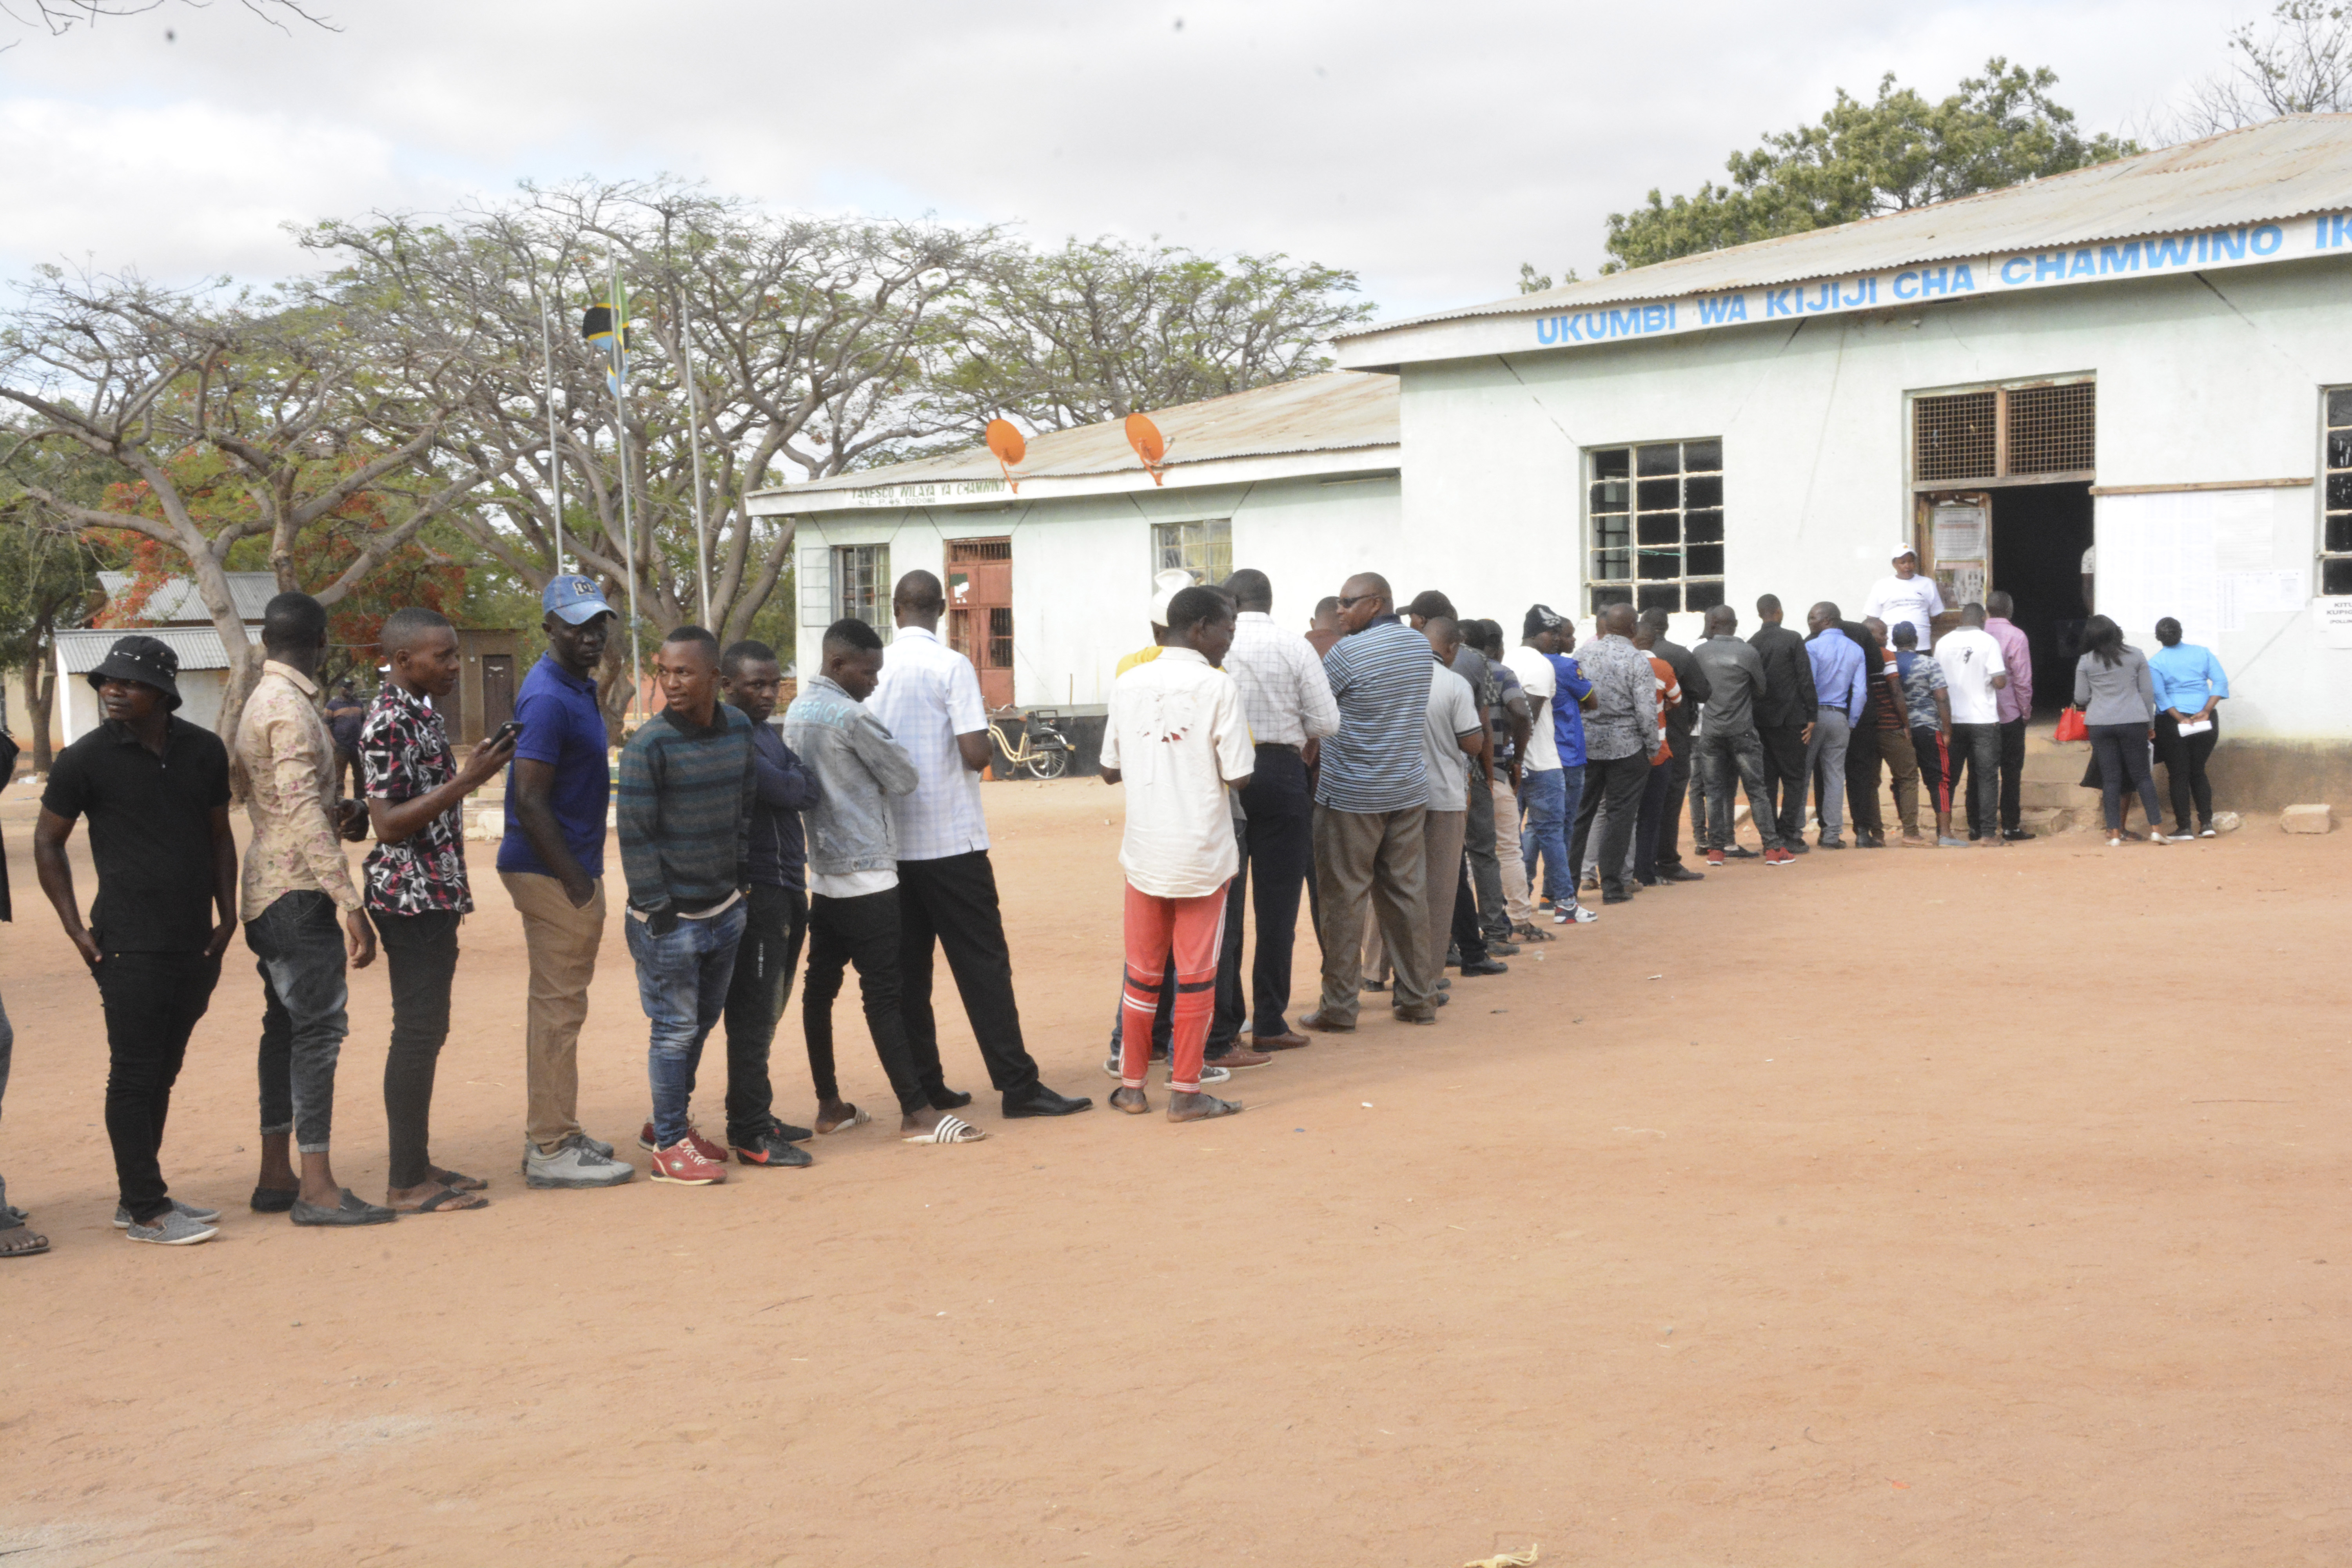 Tanzanians Vote In Elections Full Of Irregularities